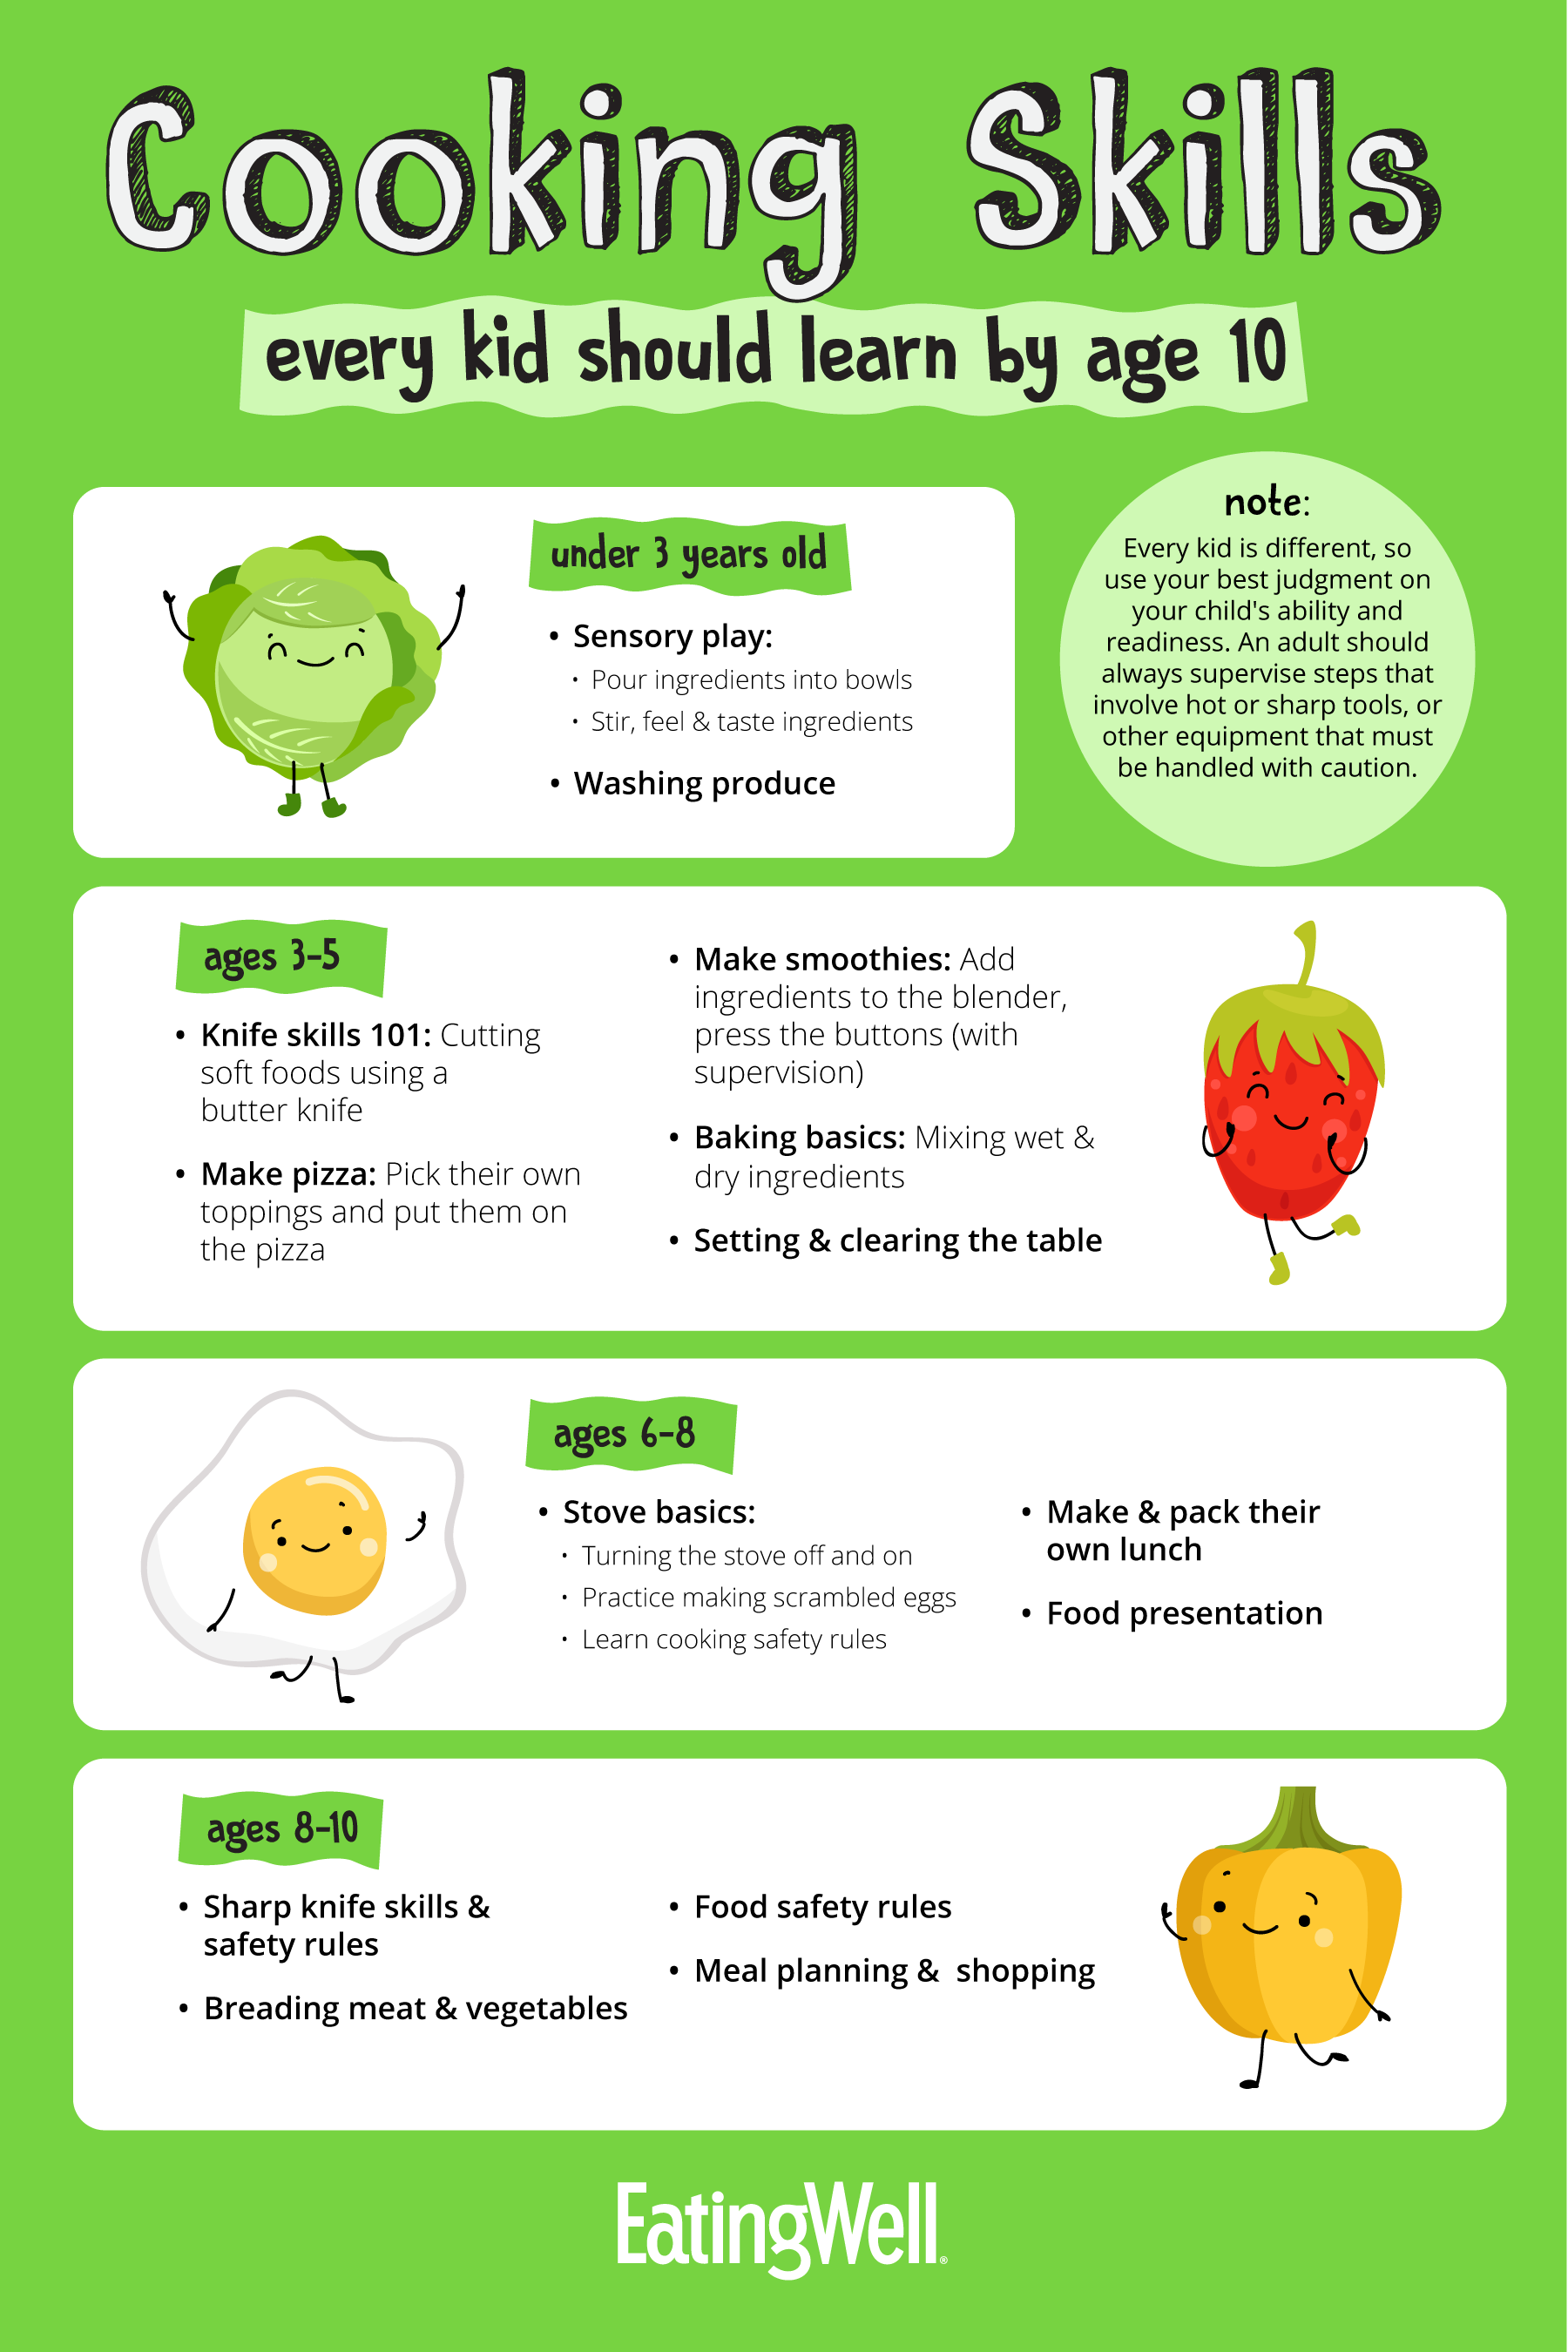 A chart showing cooking skills that kids should learn by age 10